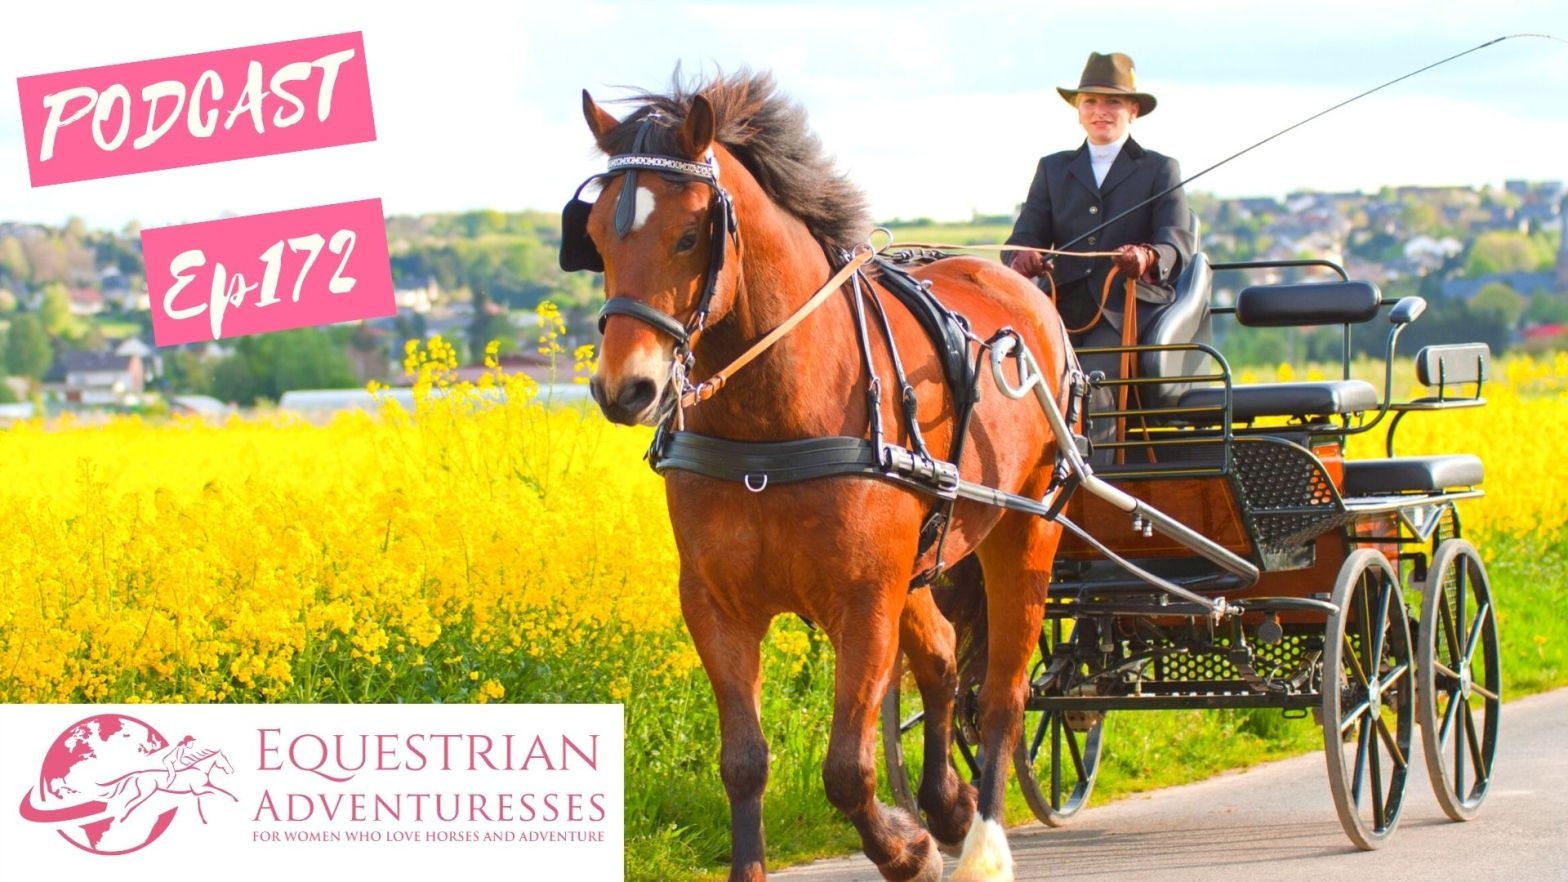 Equestrian Adventuresses Travel and Horse Podcast Ep 172 - Exchanging my Saddle for a Harness